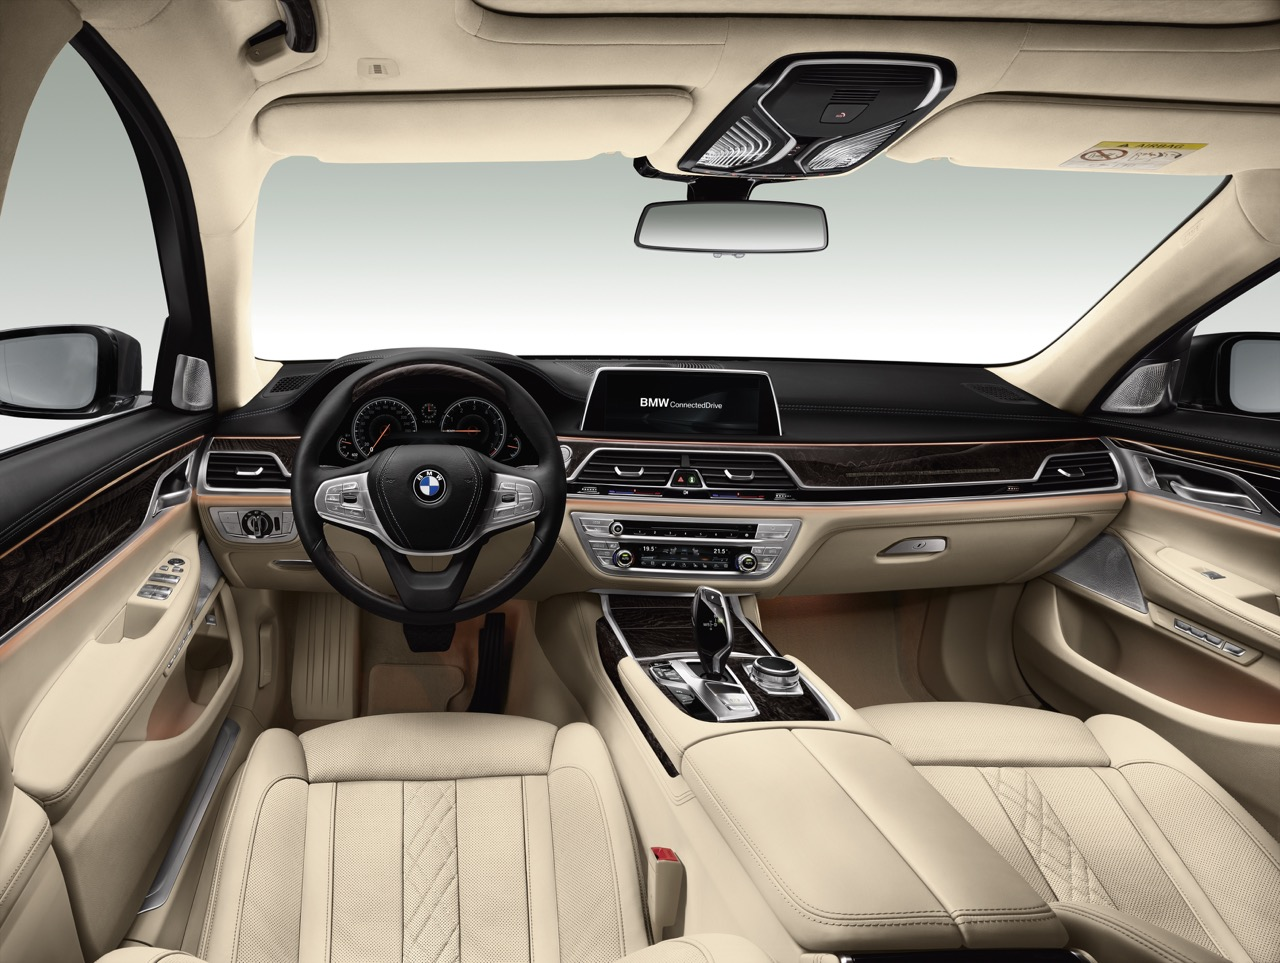 2017 BMW 5 Series (G30) to make its debut in late 2016